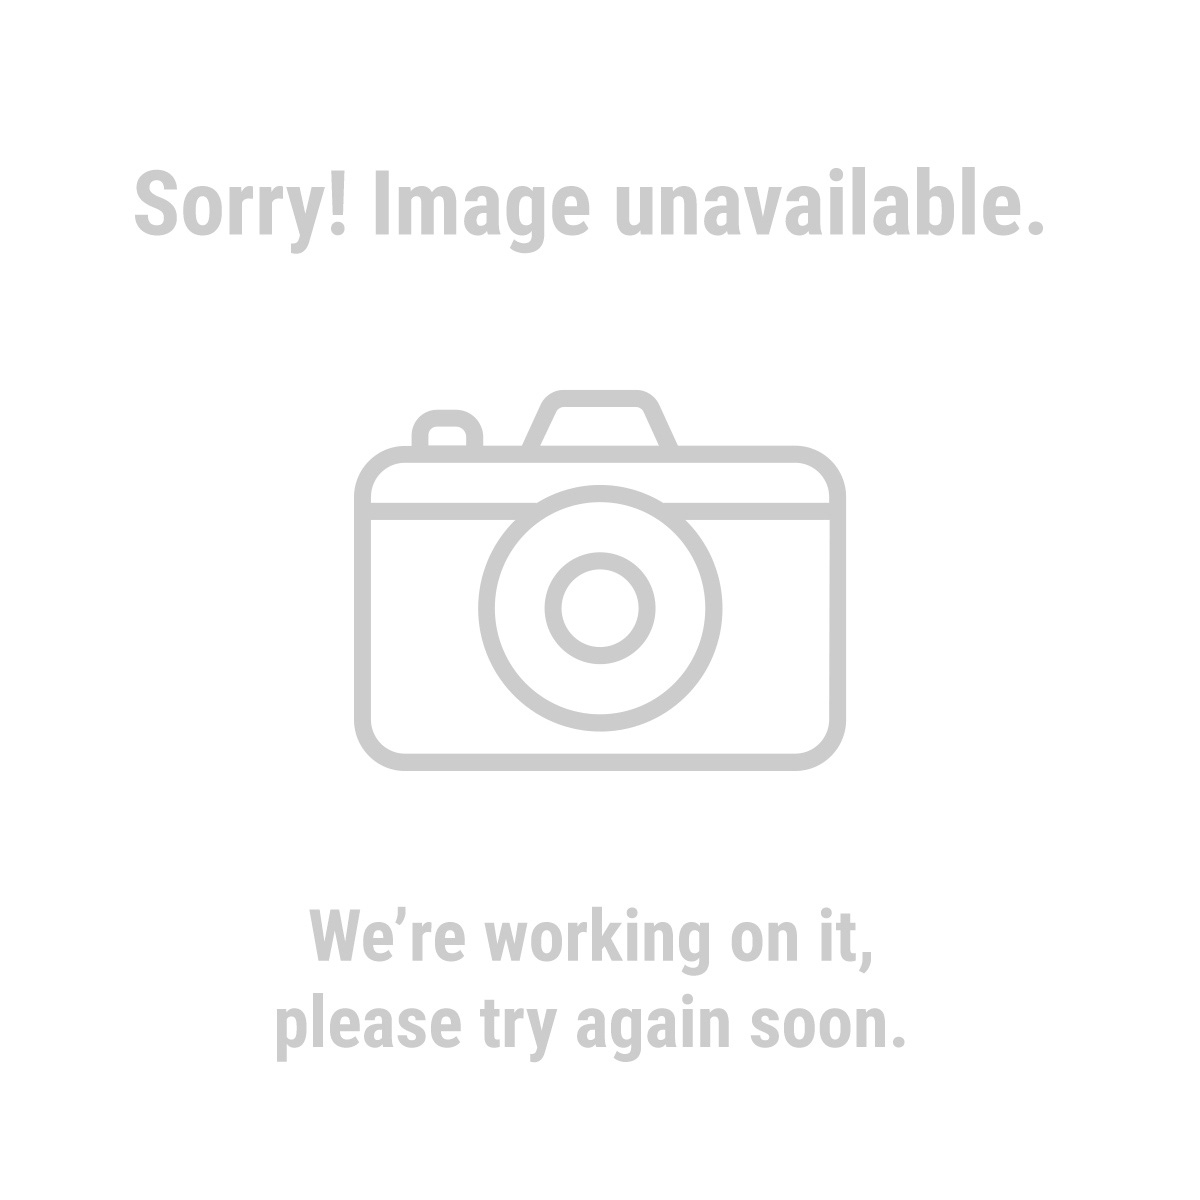 Chicago Electric Welding 69029 225 Amp Arc Welder